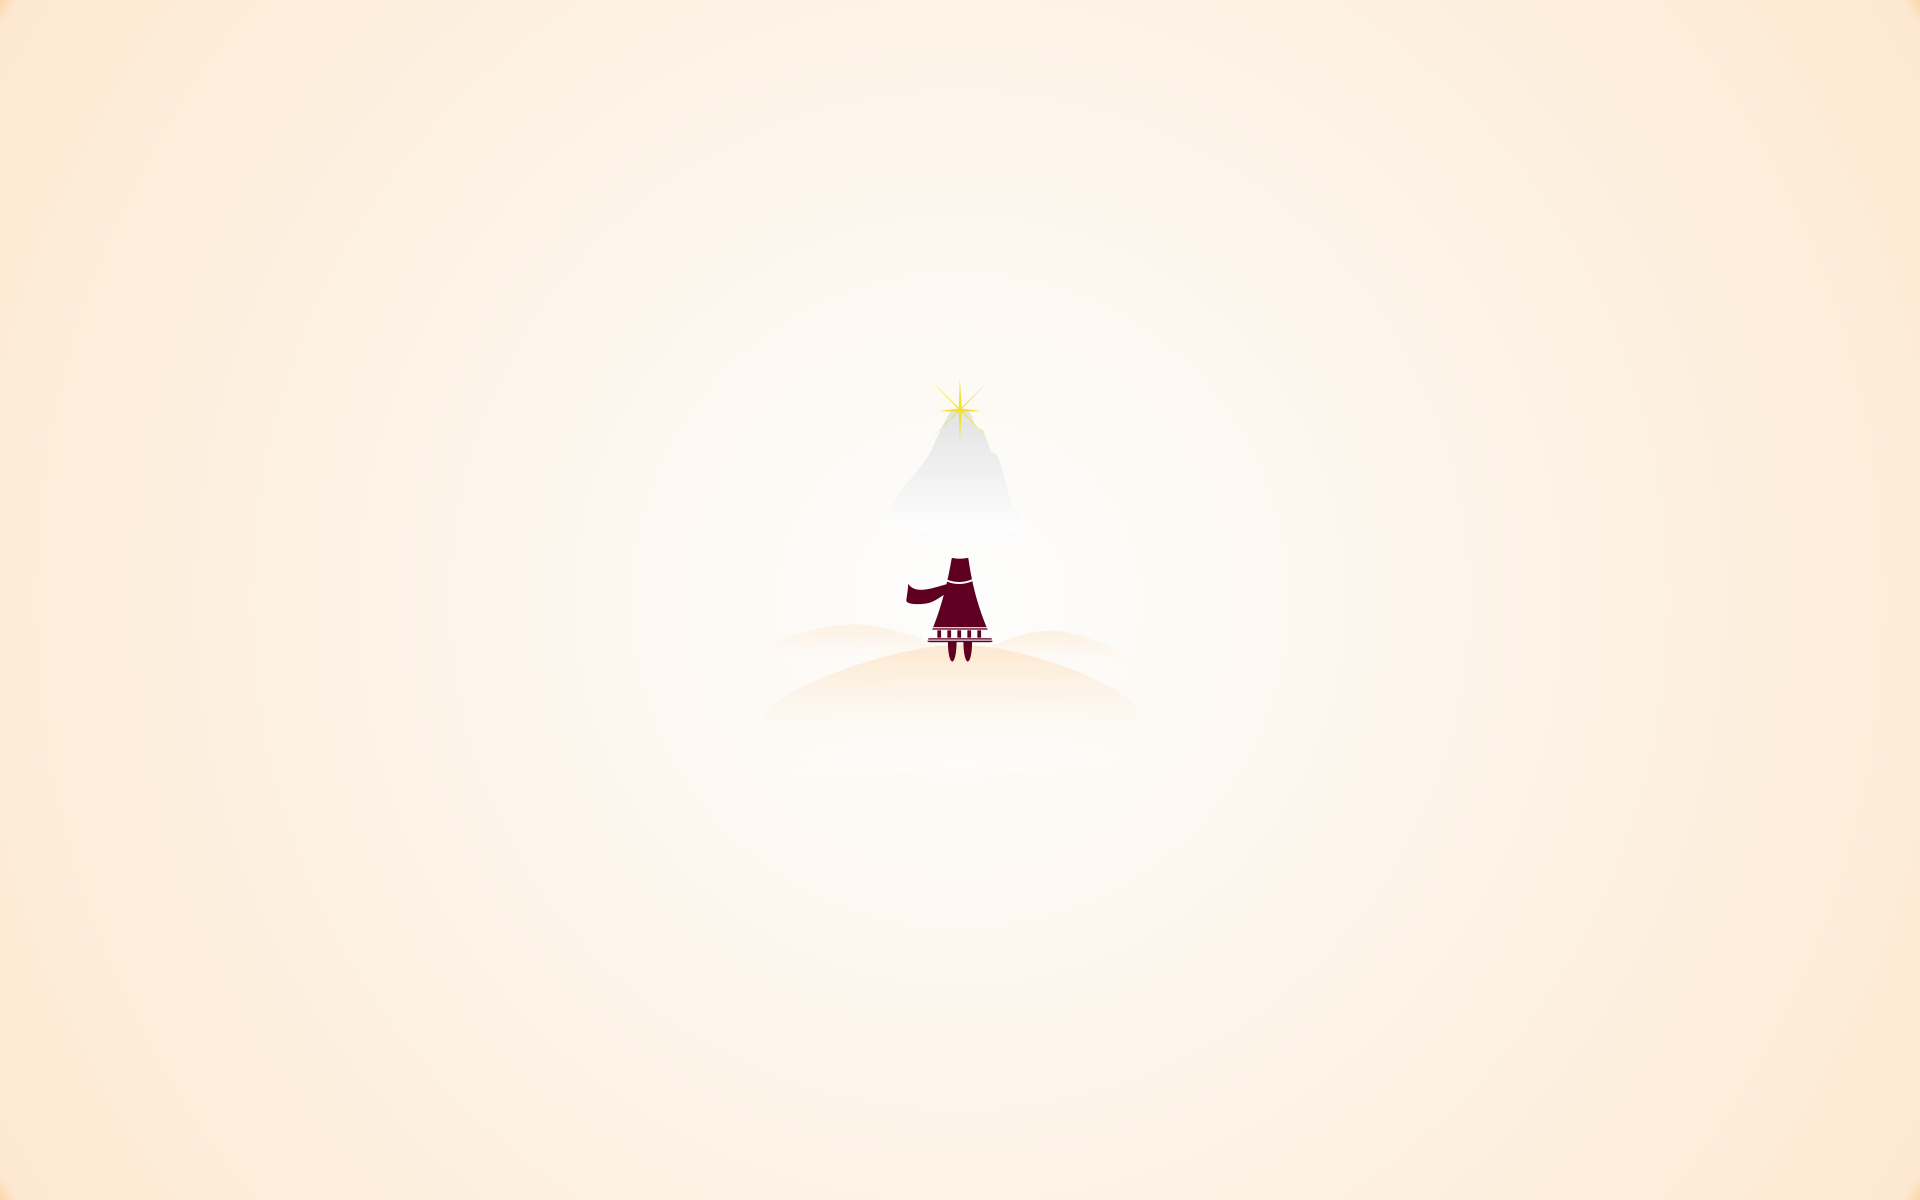 Wallpaper journey minimal minimalist art 1315610 for Minimal artiste